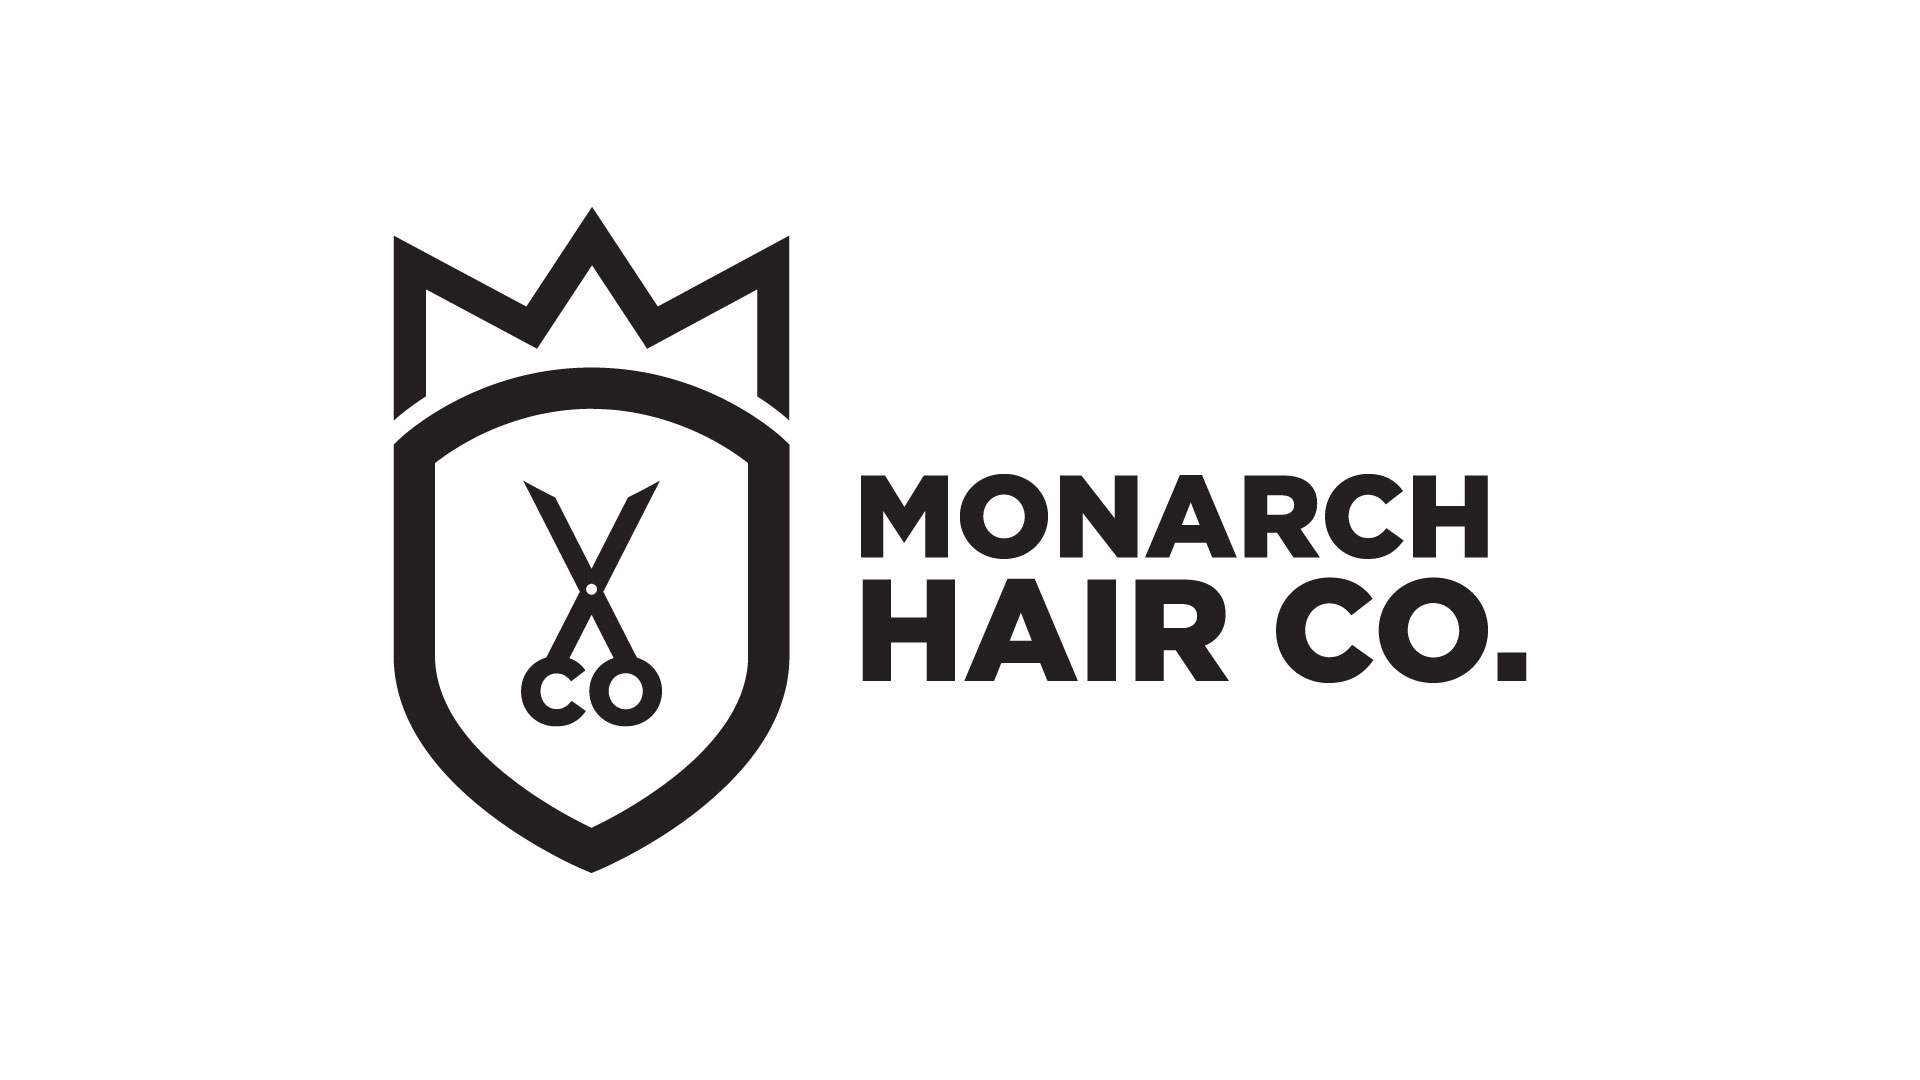 Monarch Hair Company